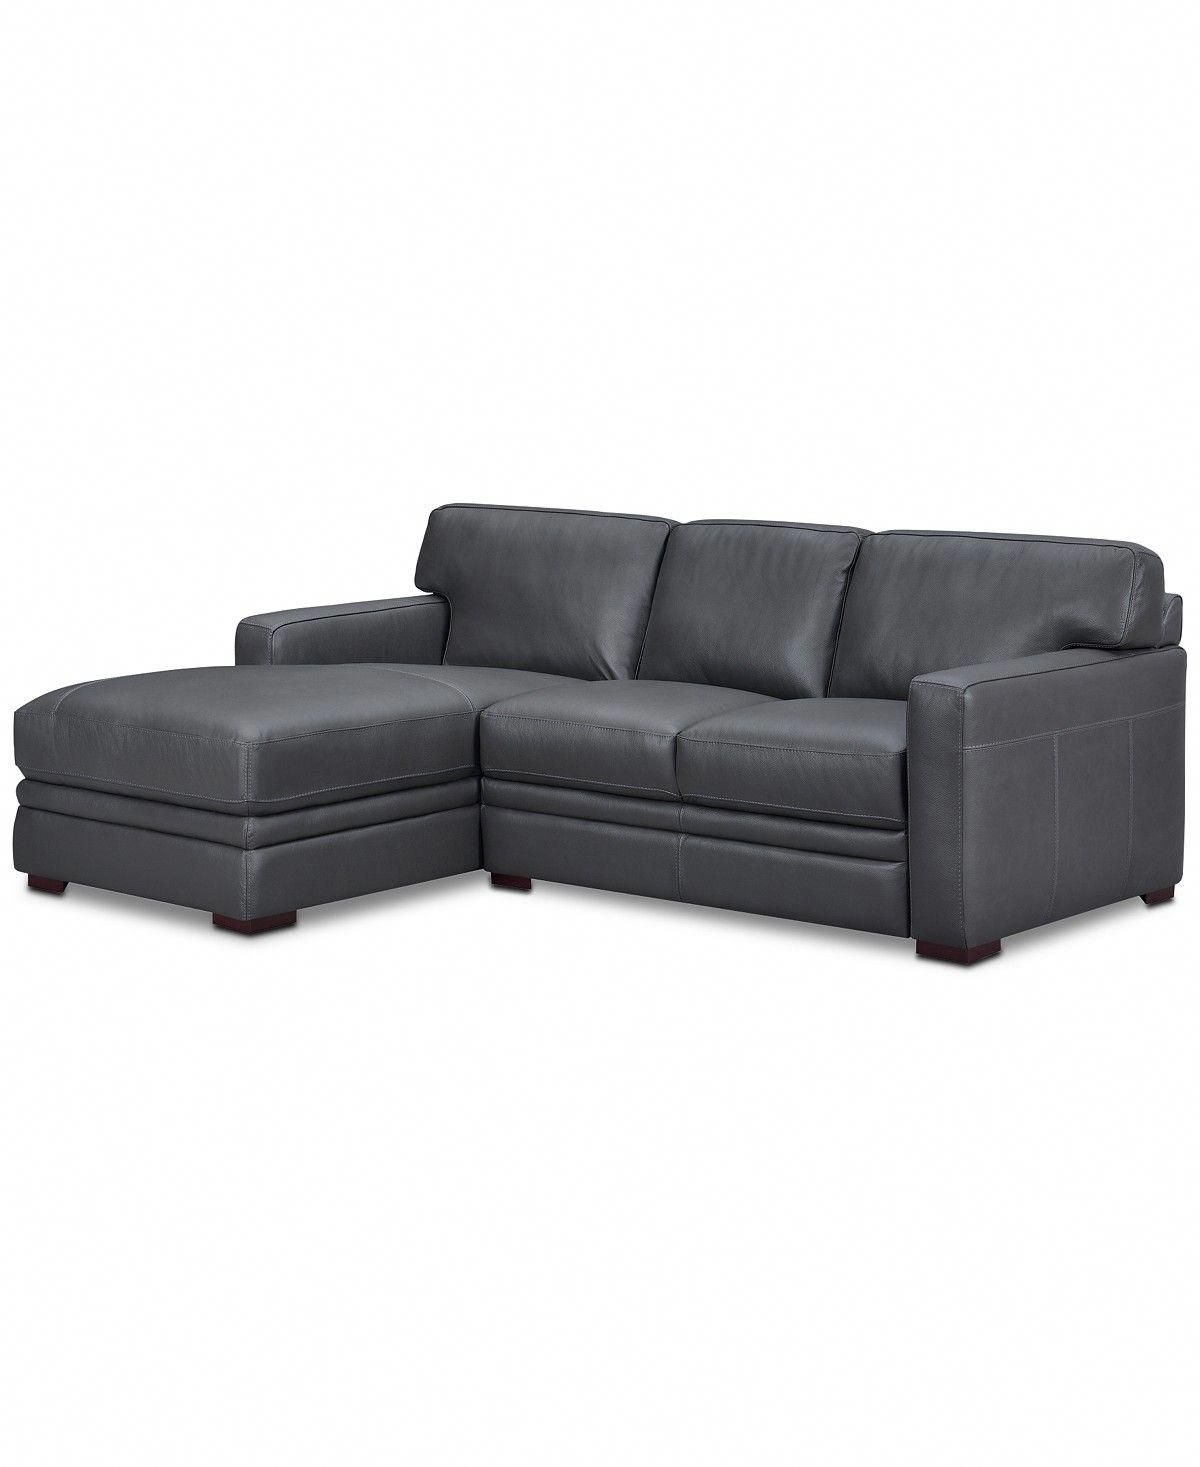 Avenell 2pc leather sectional with chaise created for